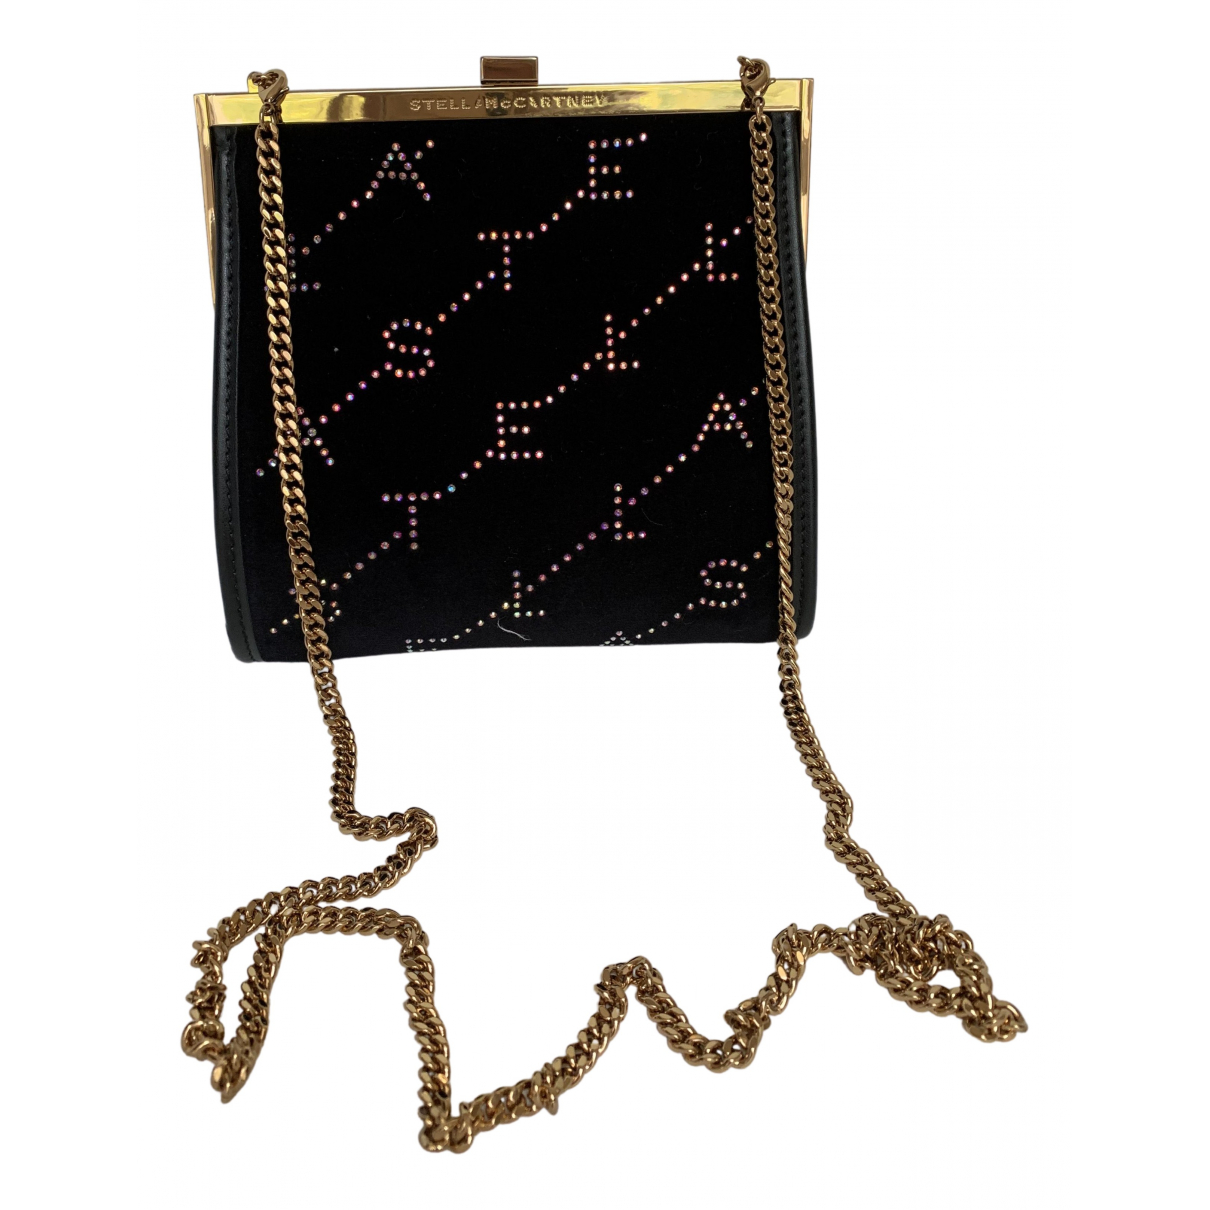 Stella Mccartney \N Clutch in  Schwarz Samt